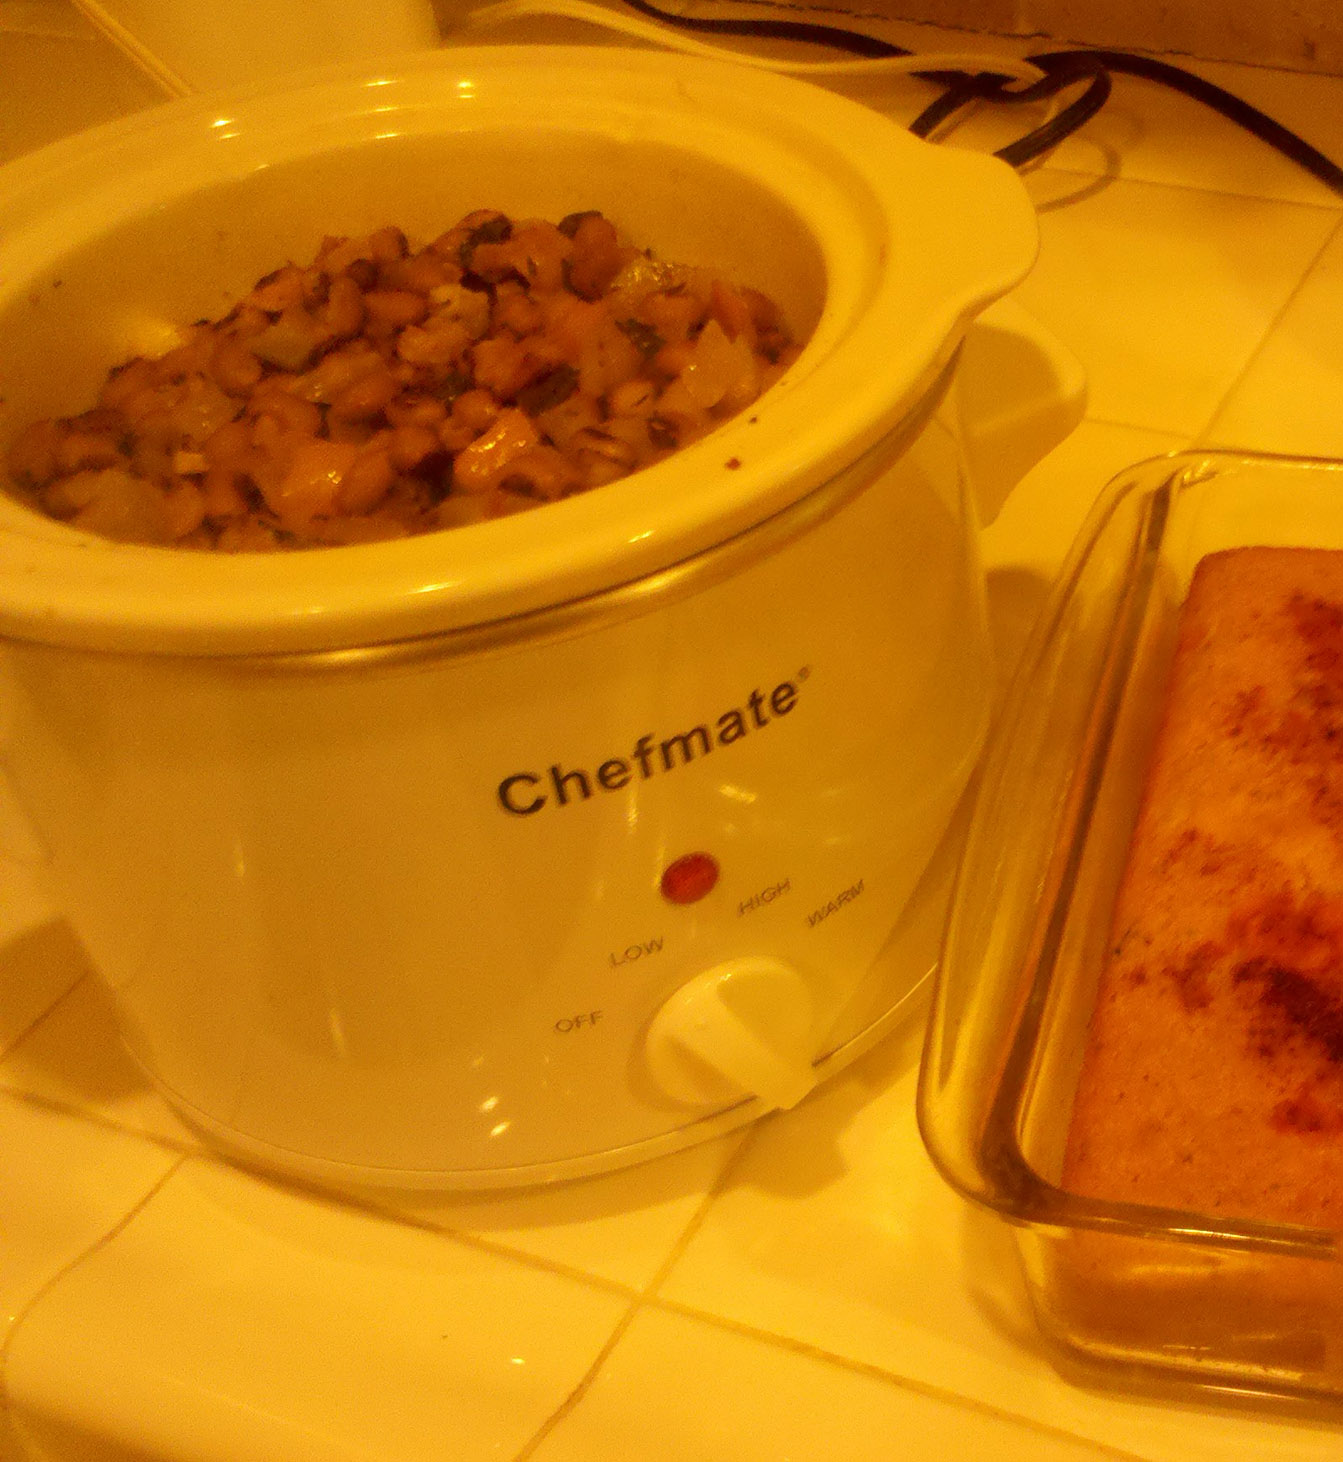 Warming my 2011 Black-eyed peas in the crock pot, with paprika dusted cornbread on the side